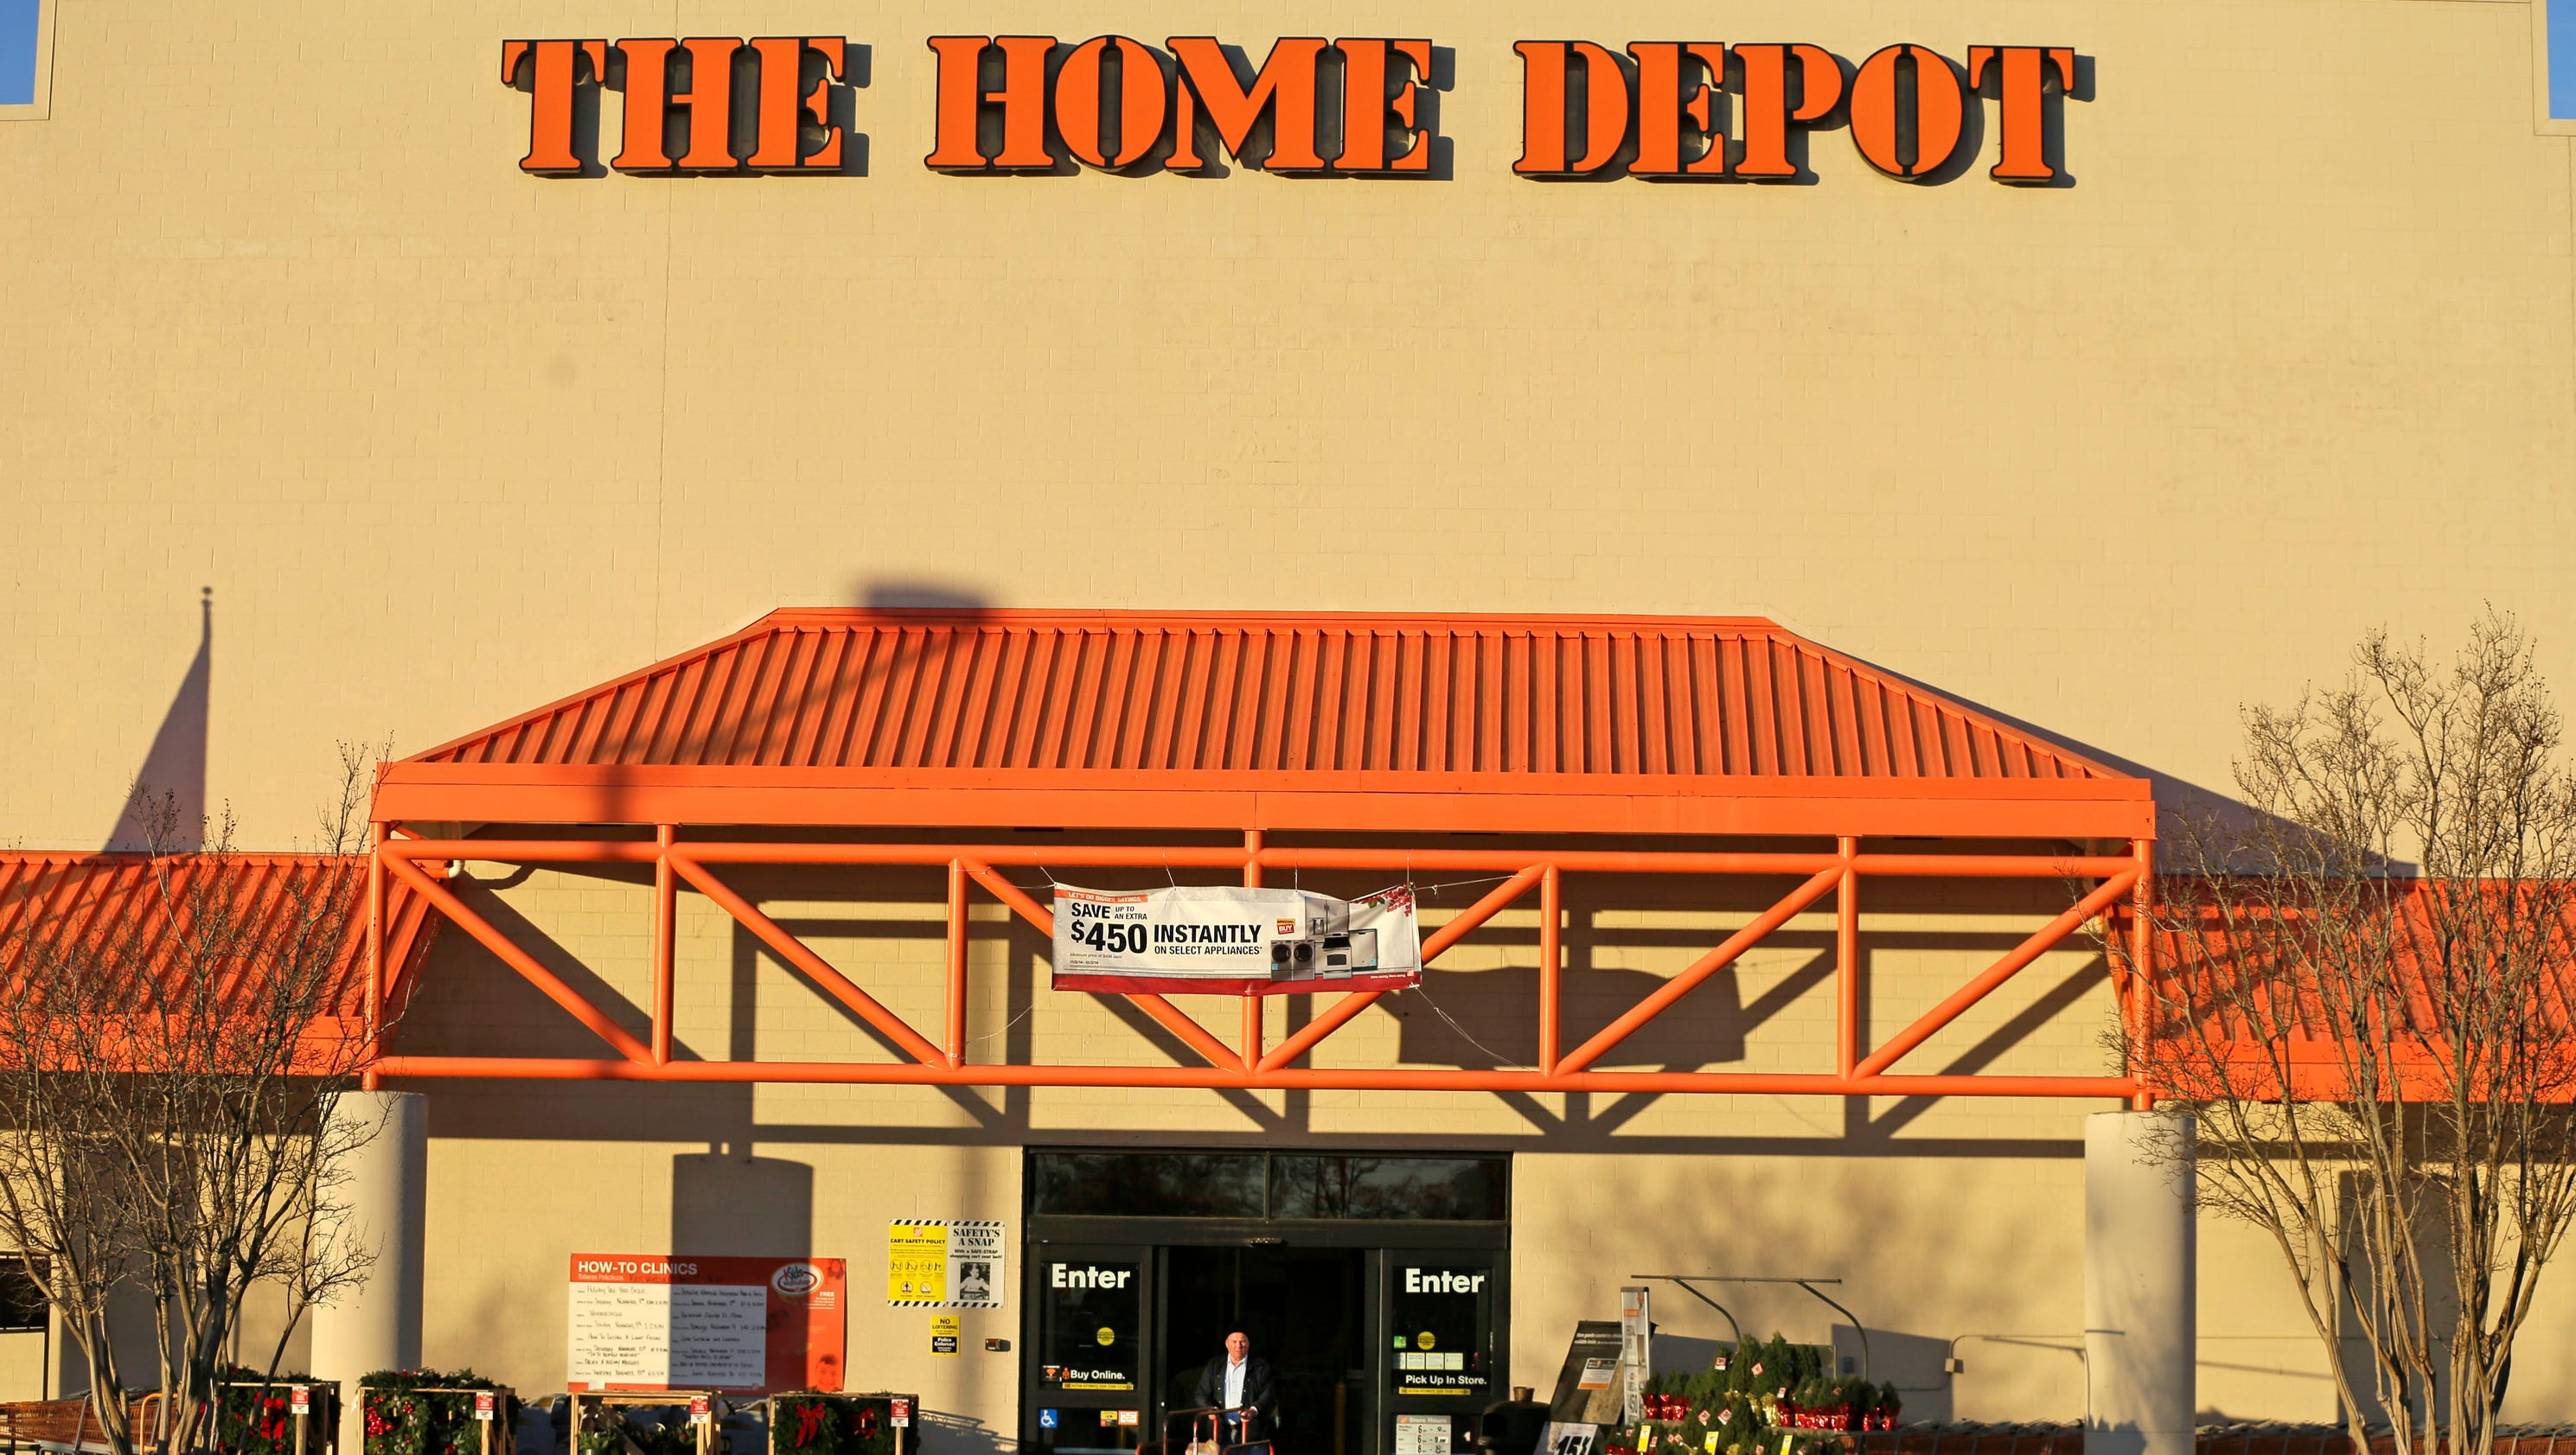 Sep 02, · Multiple banks say they are seeing evidence that Home Depot stores may be the source of a massive new batch of stolen credit and debit cards .